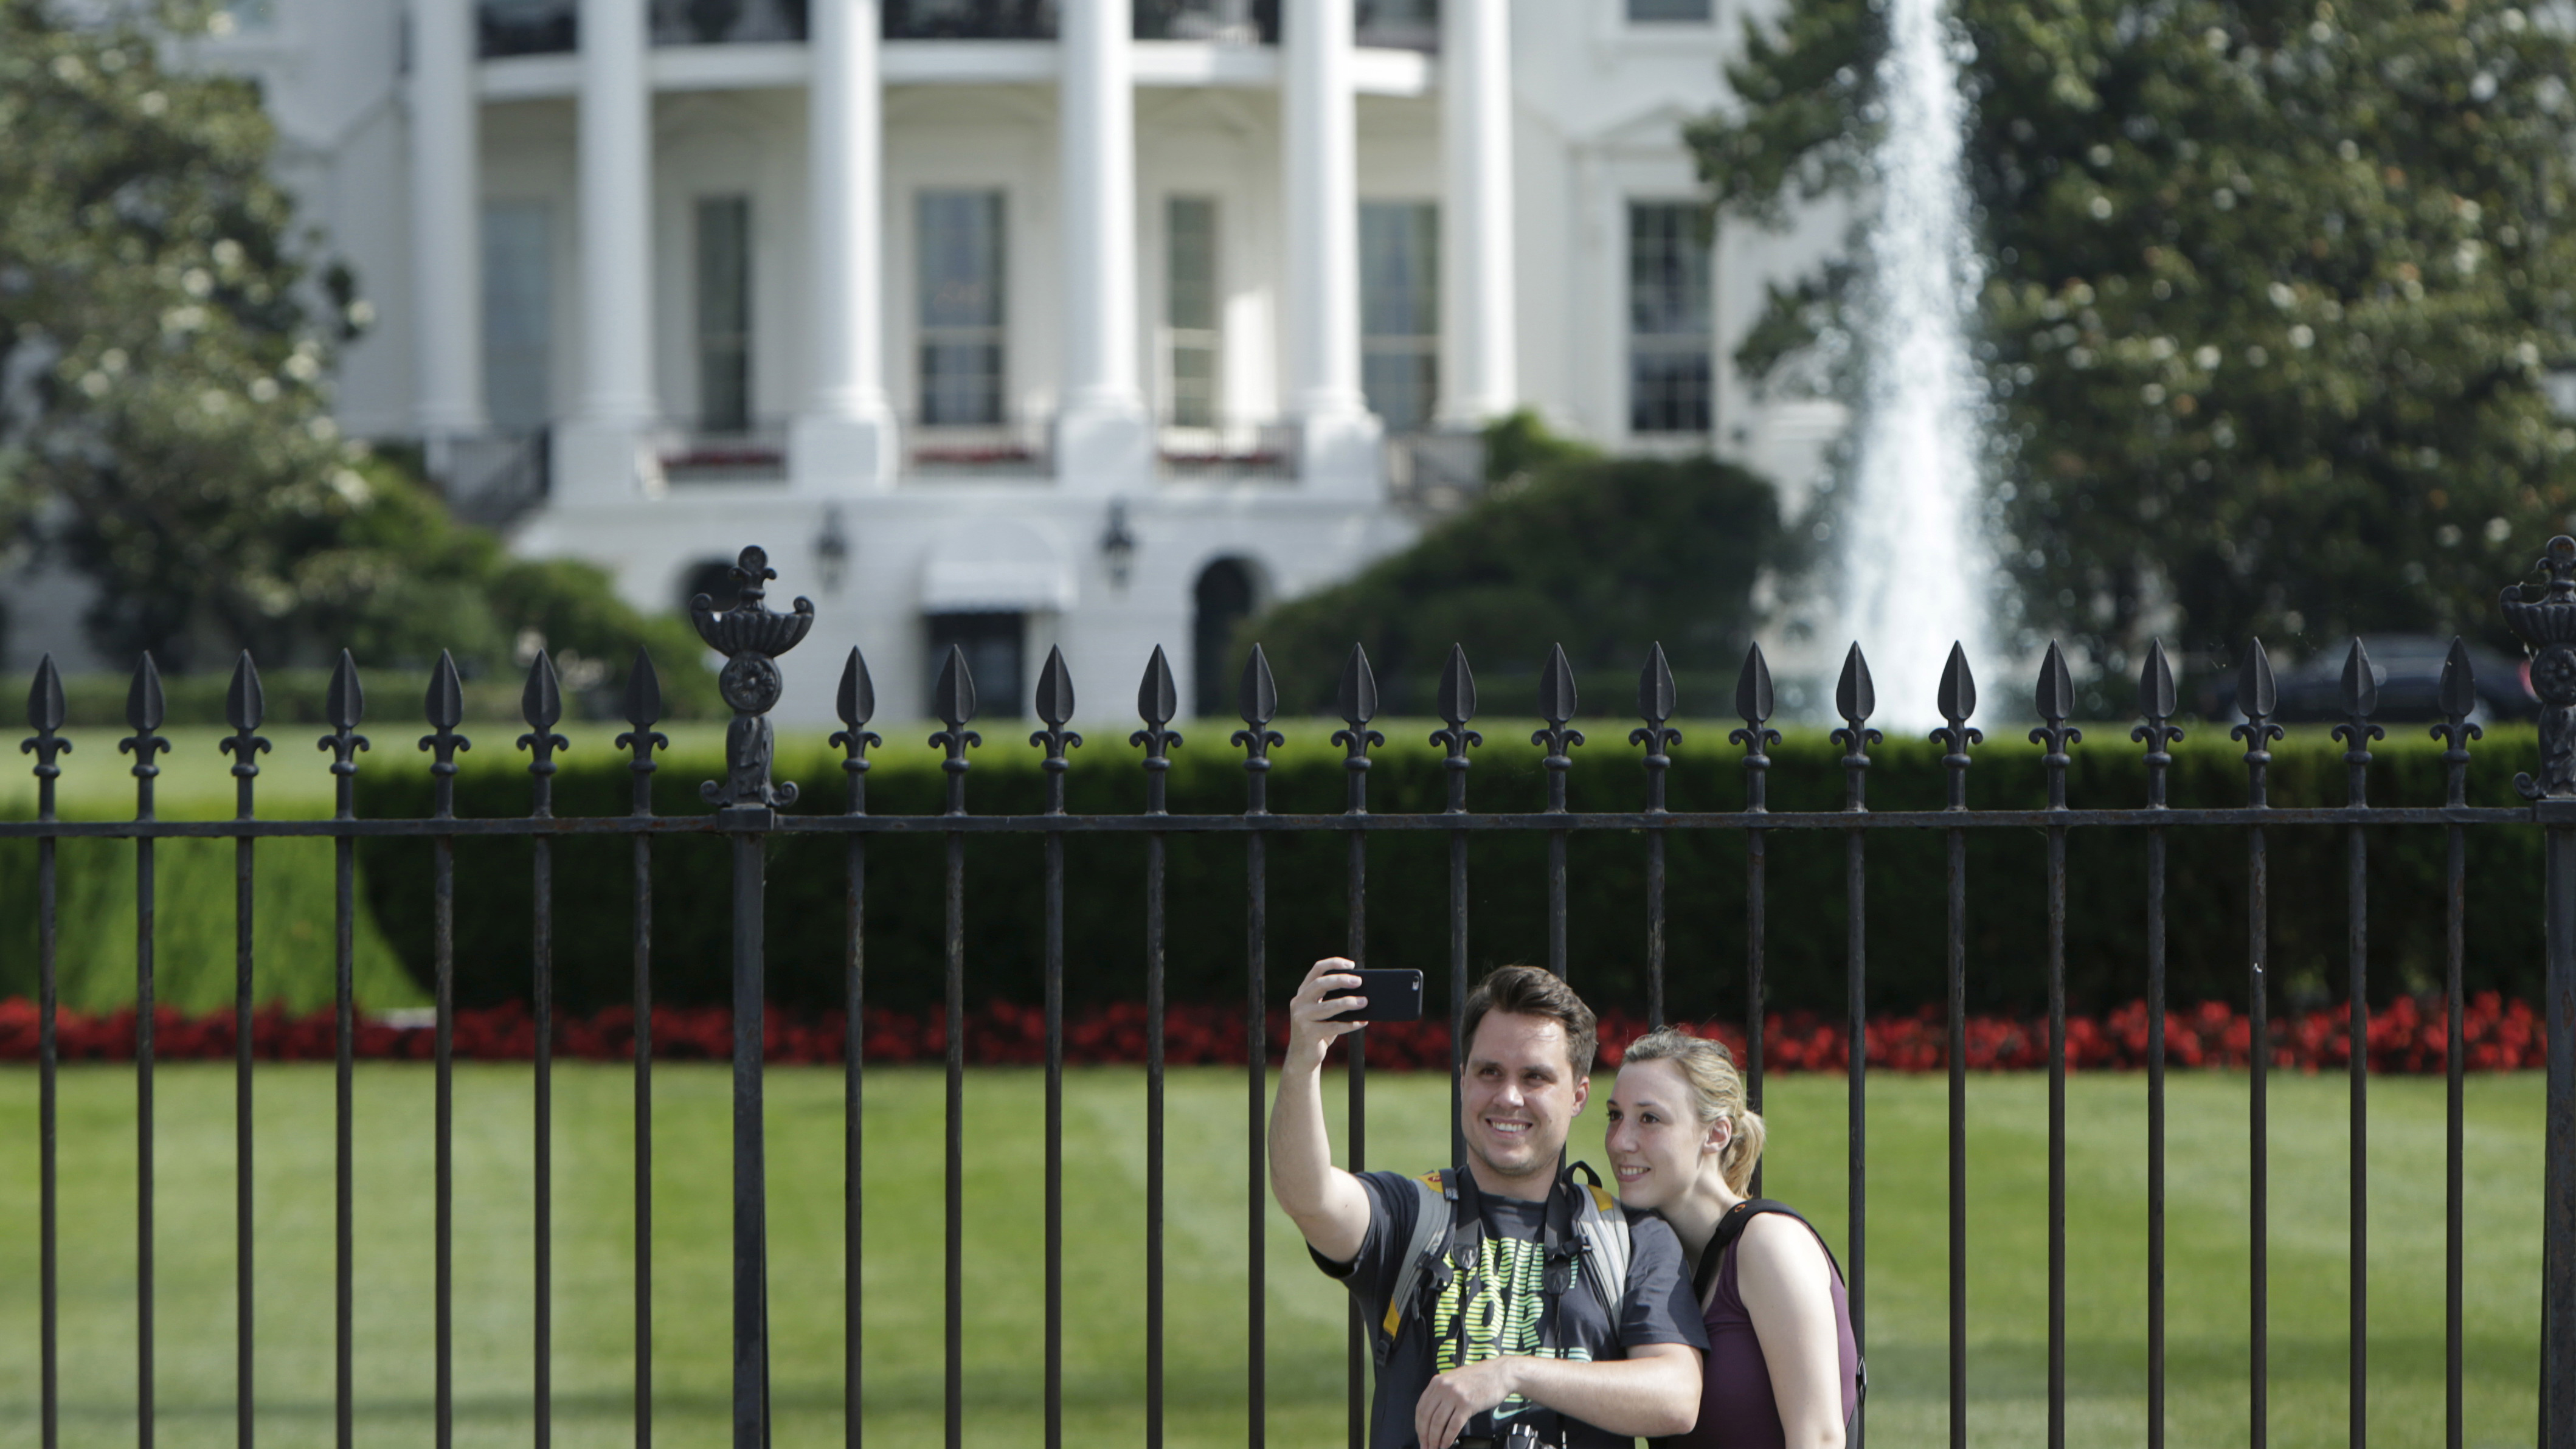 Tourists at the Whitehouse